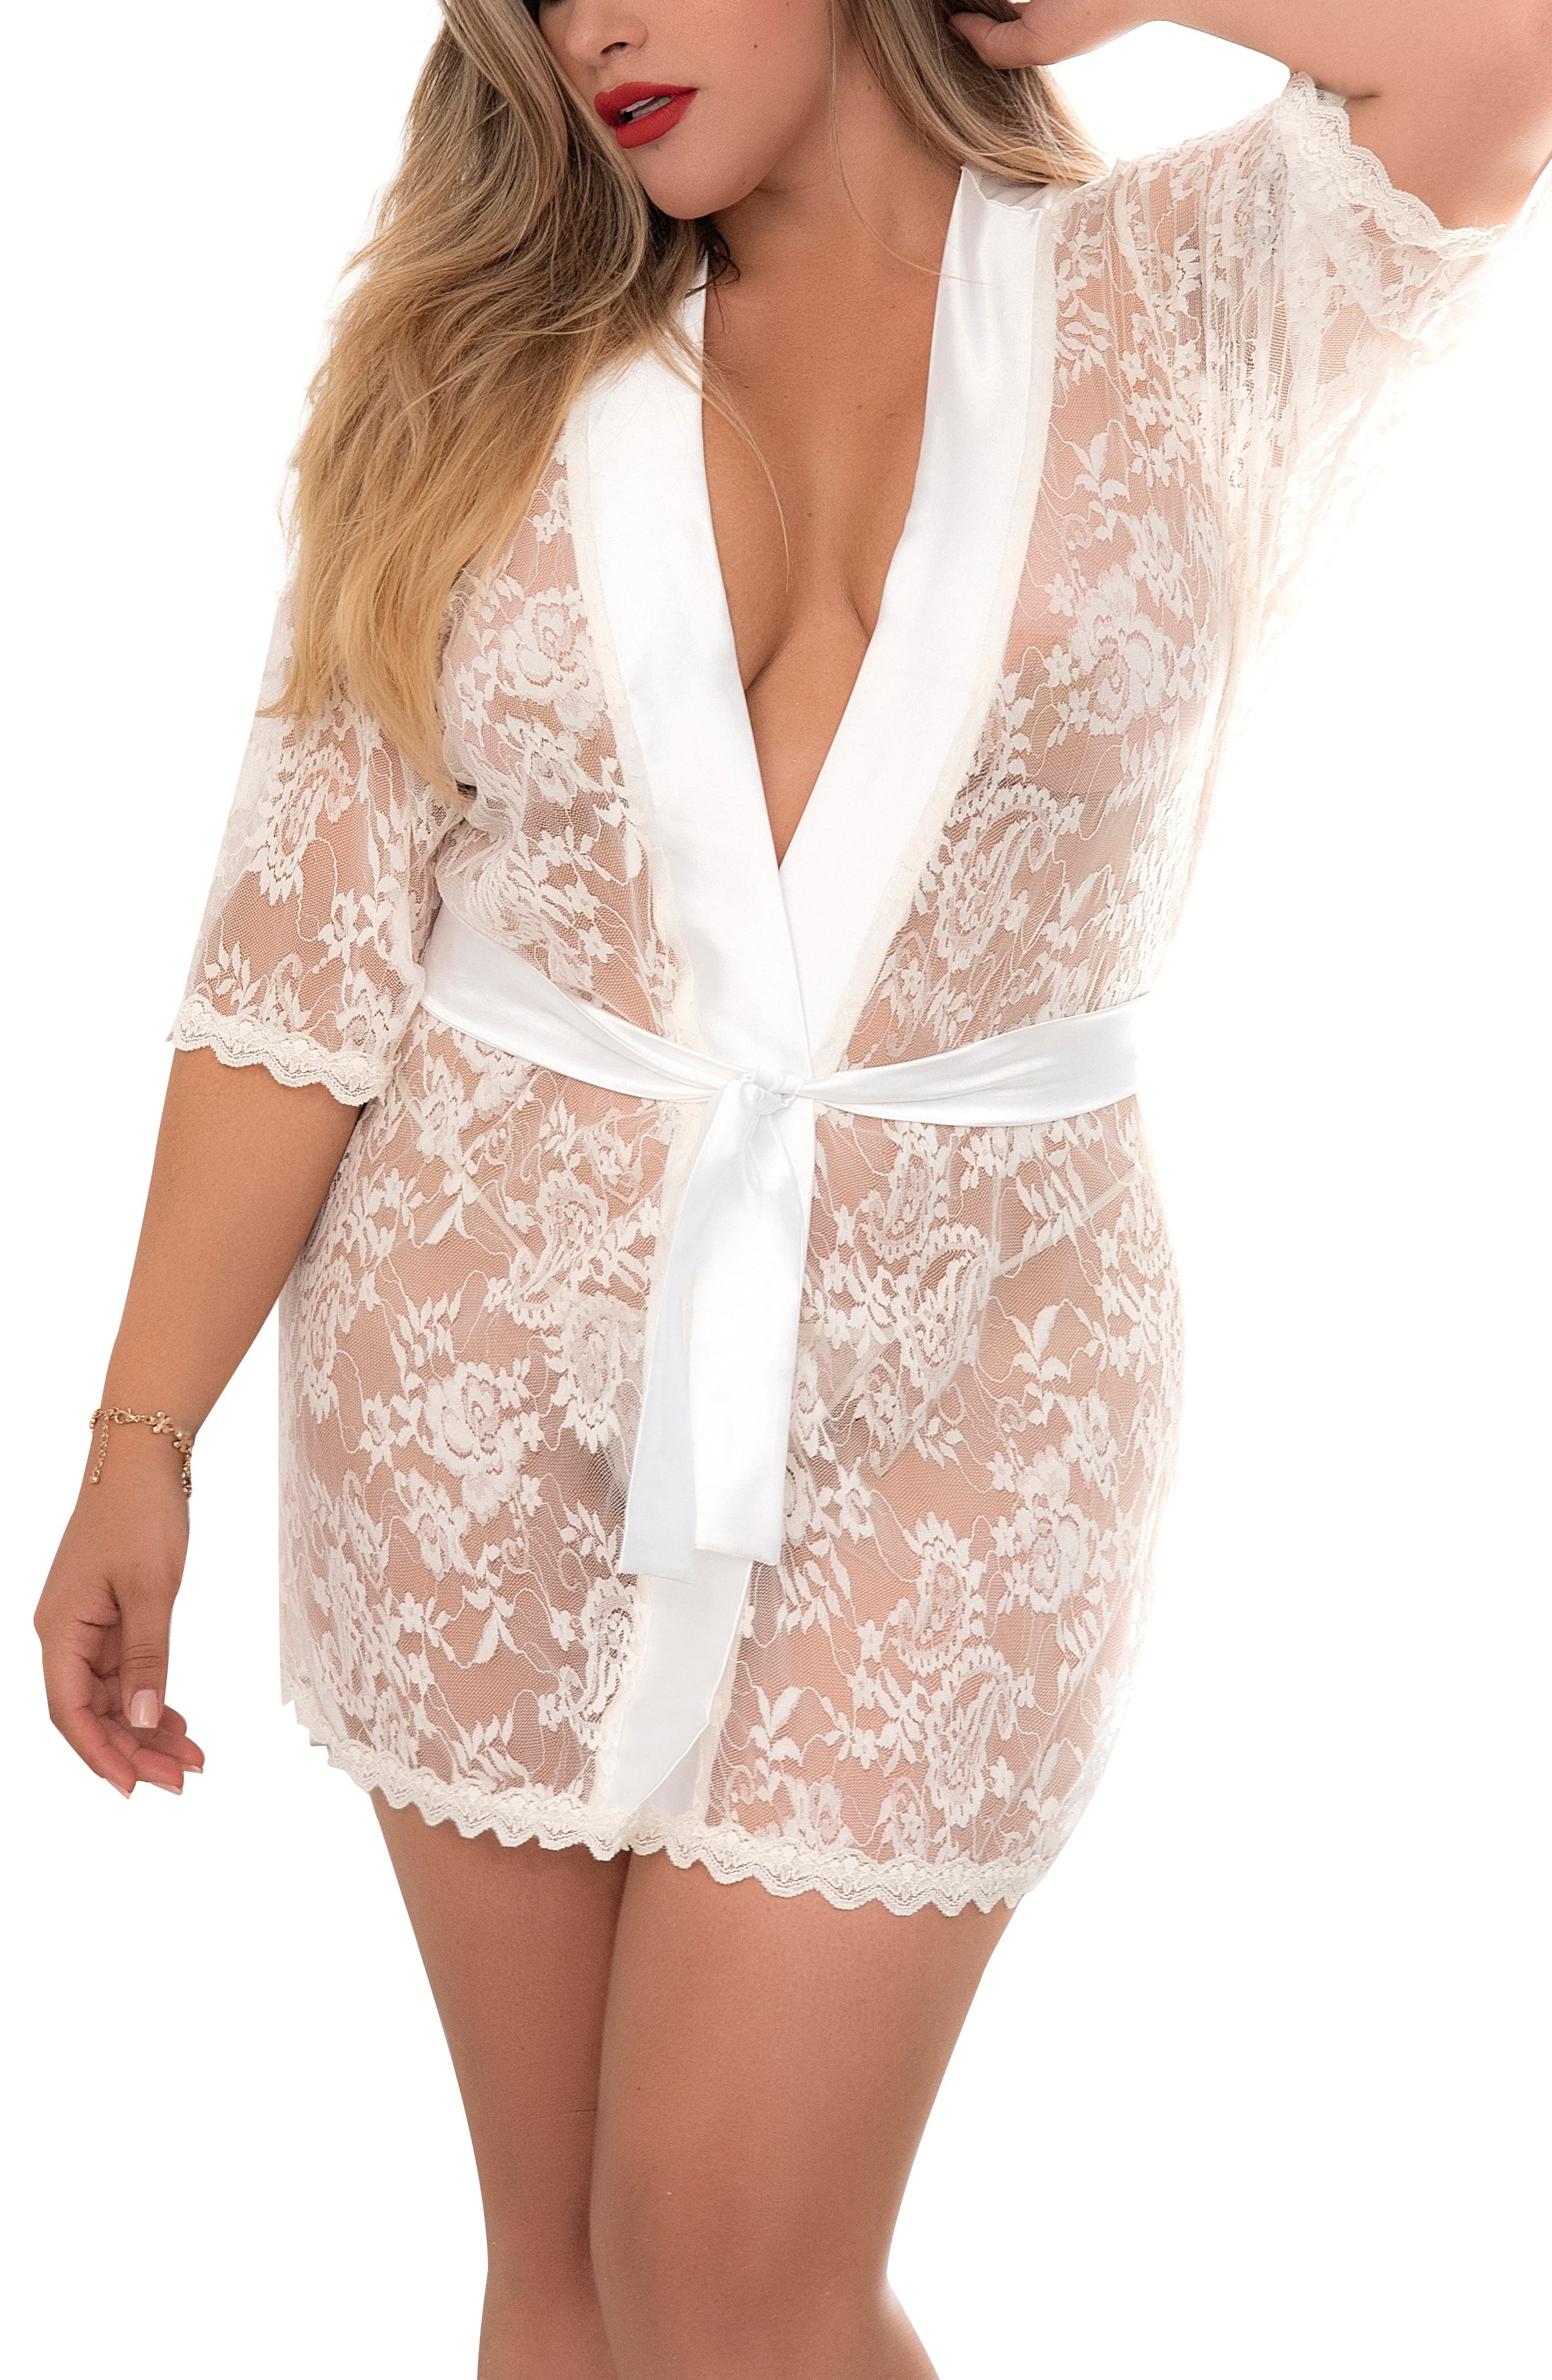 Lace Robe With G-String Thong